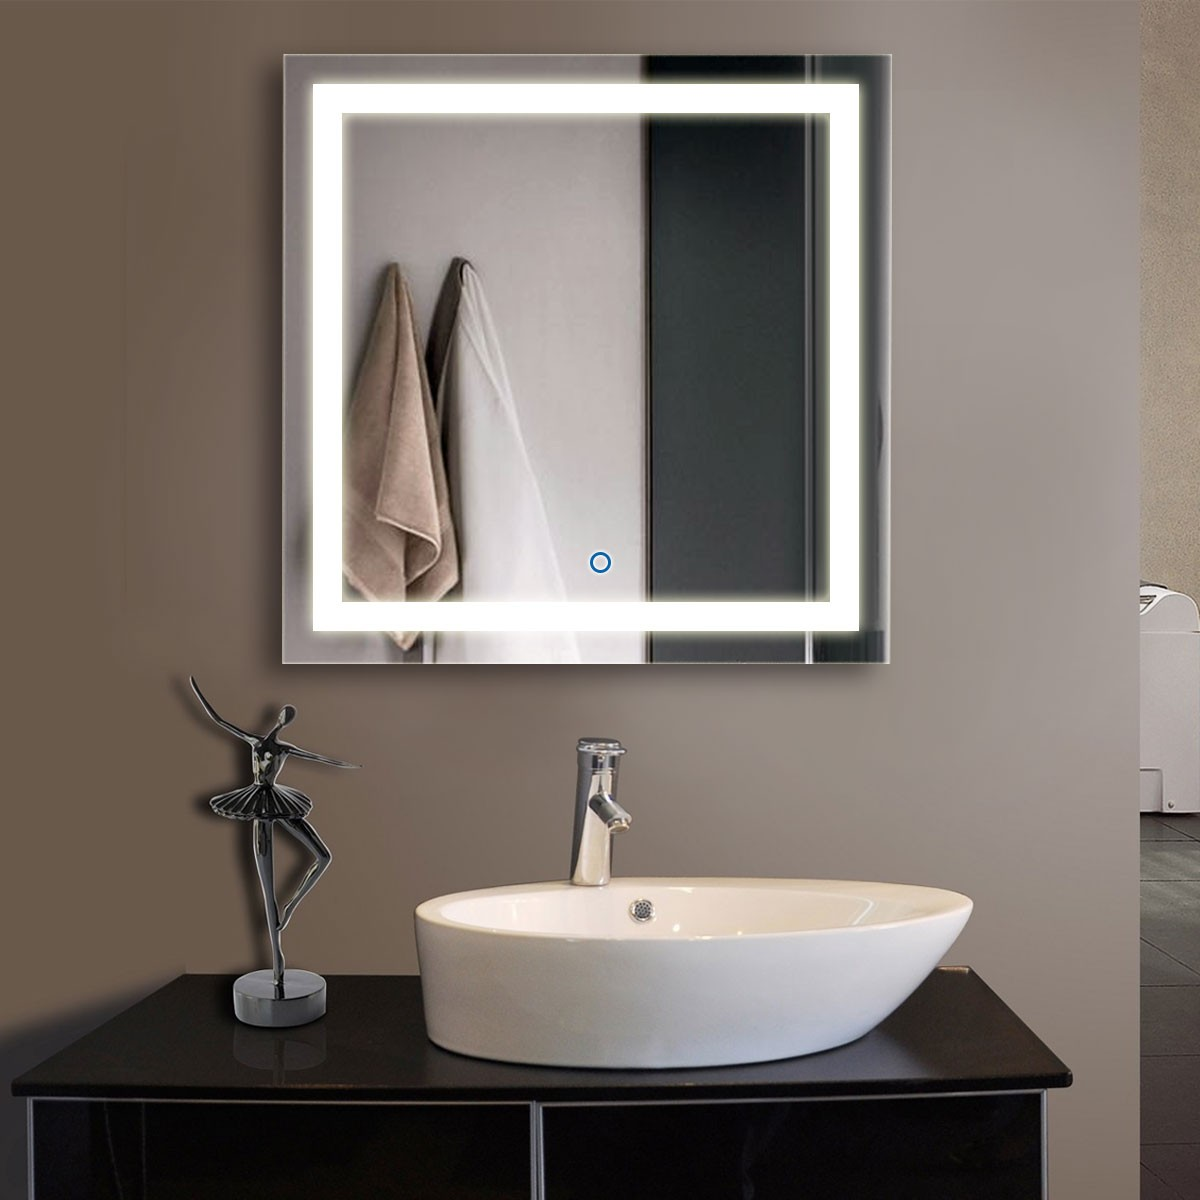 32 x 32 In. Square LED Mirror, Touch Button (DK-OD-CK010-F)